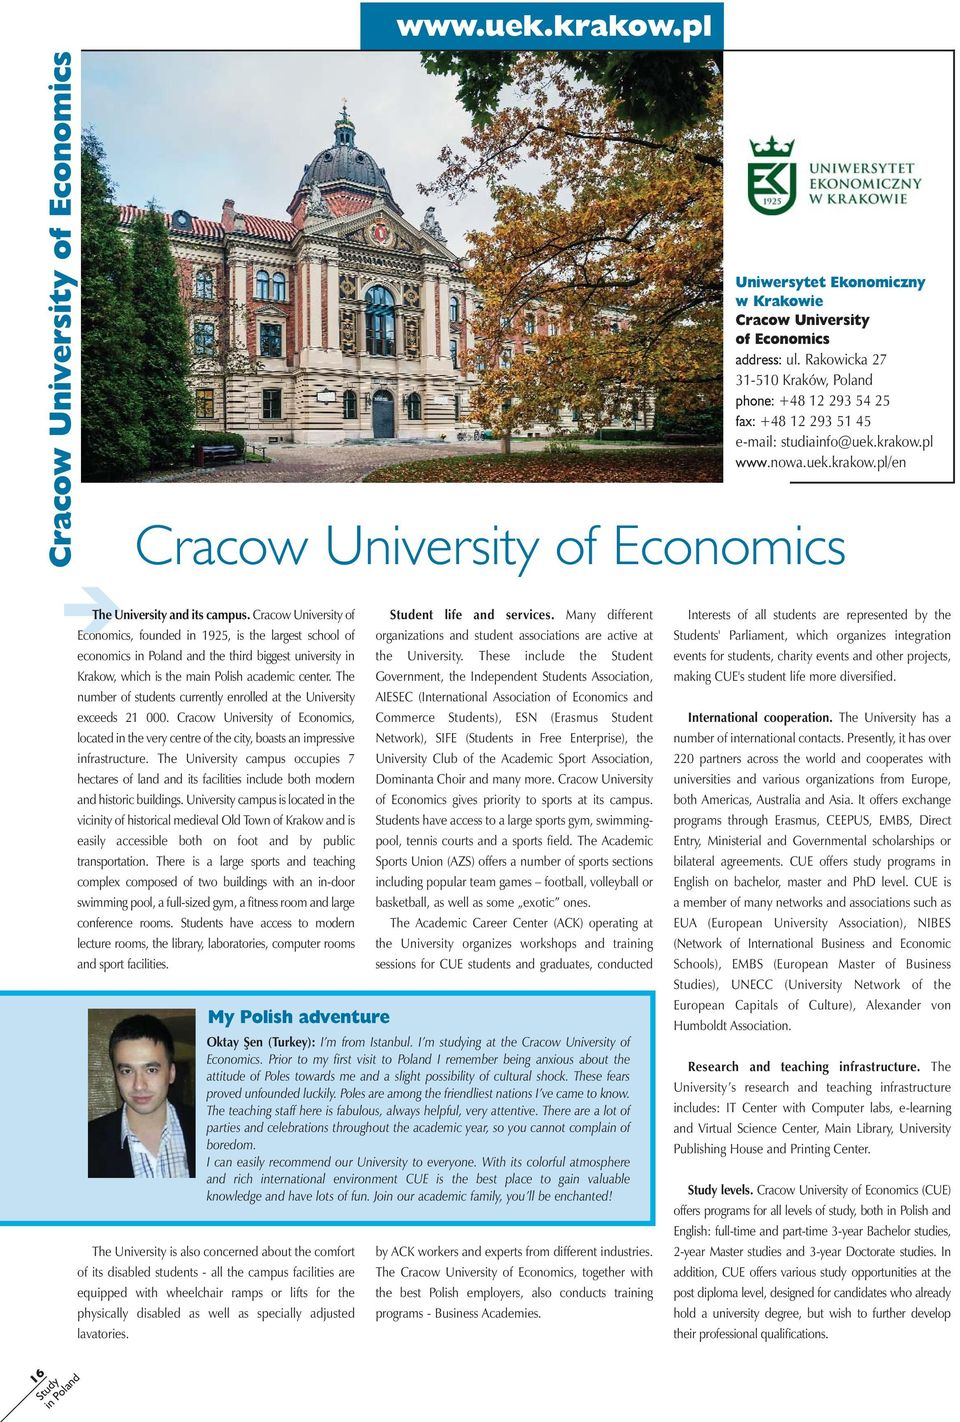 Cracow University of Economics, founded in 1925, is the largest school of economics in Poland and the third biggest university in Krakow, which is the main Polish academic center.